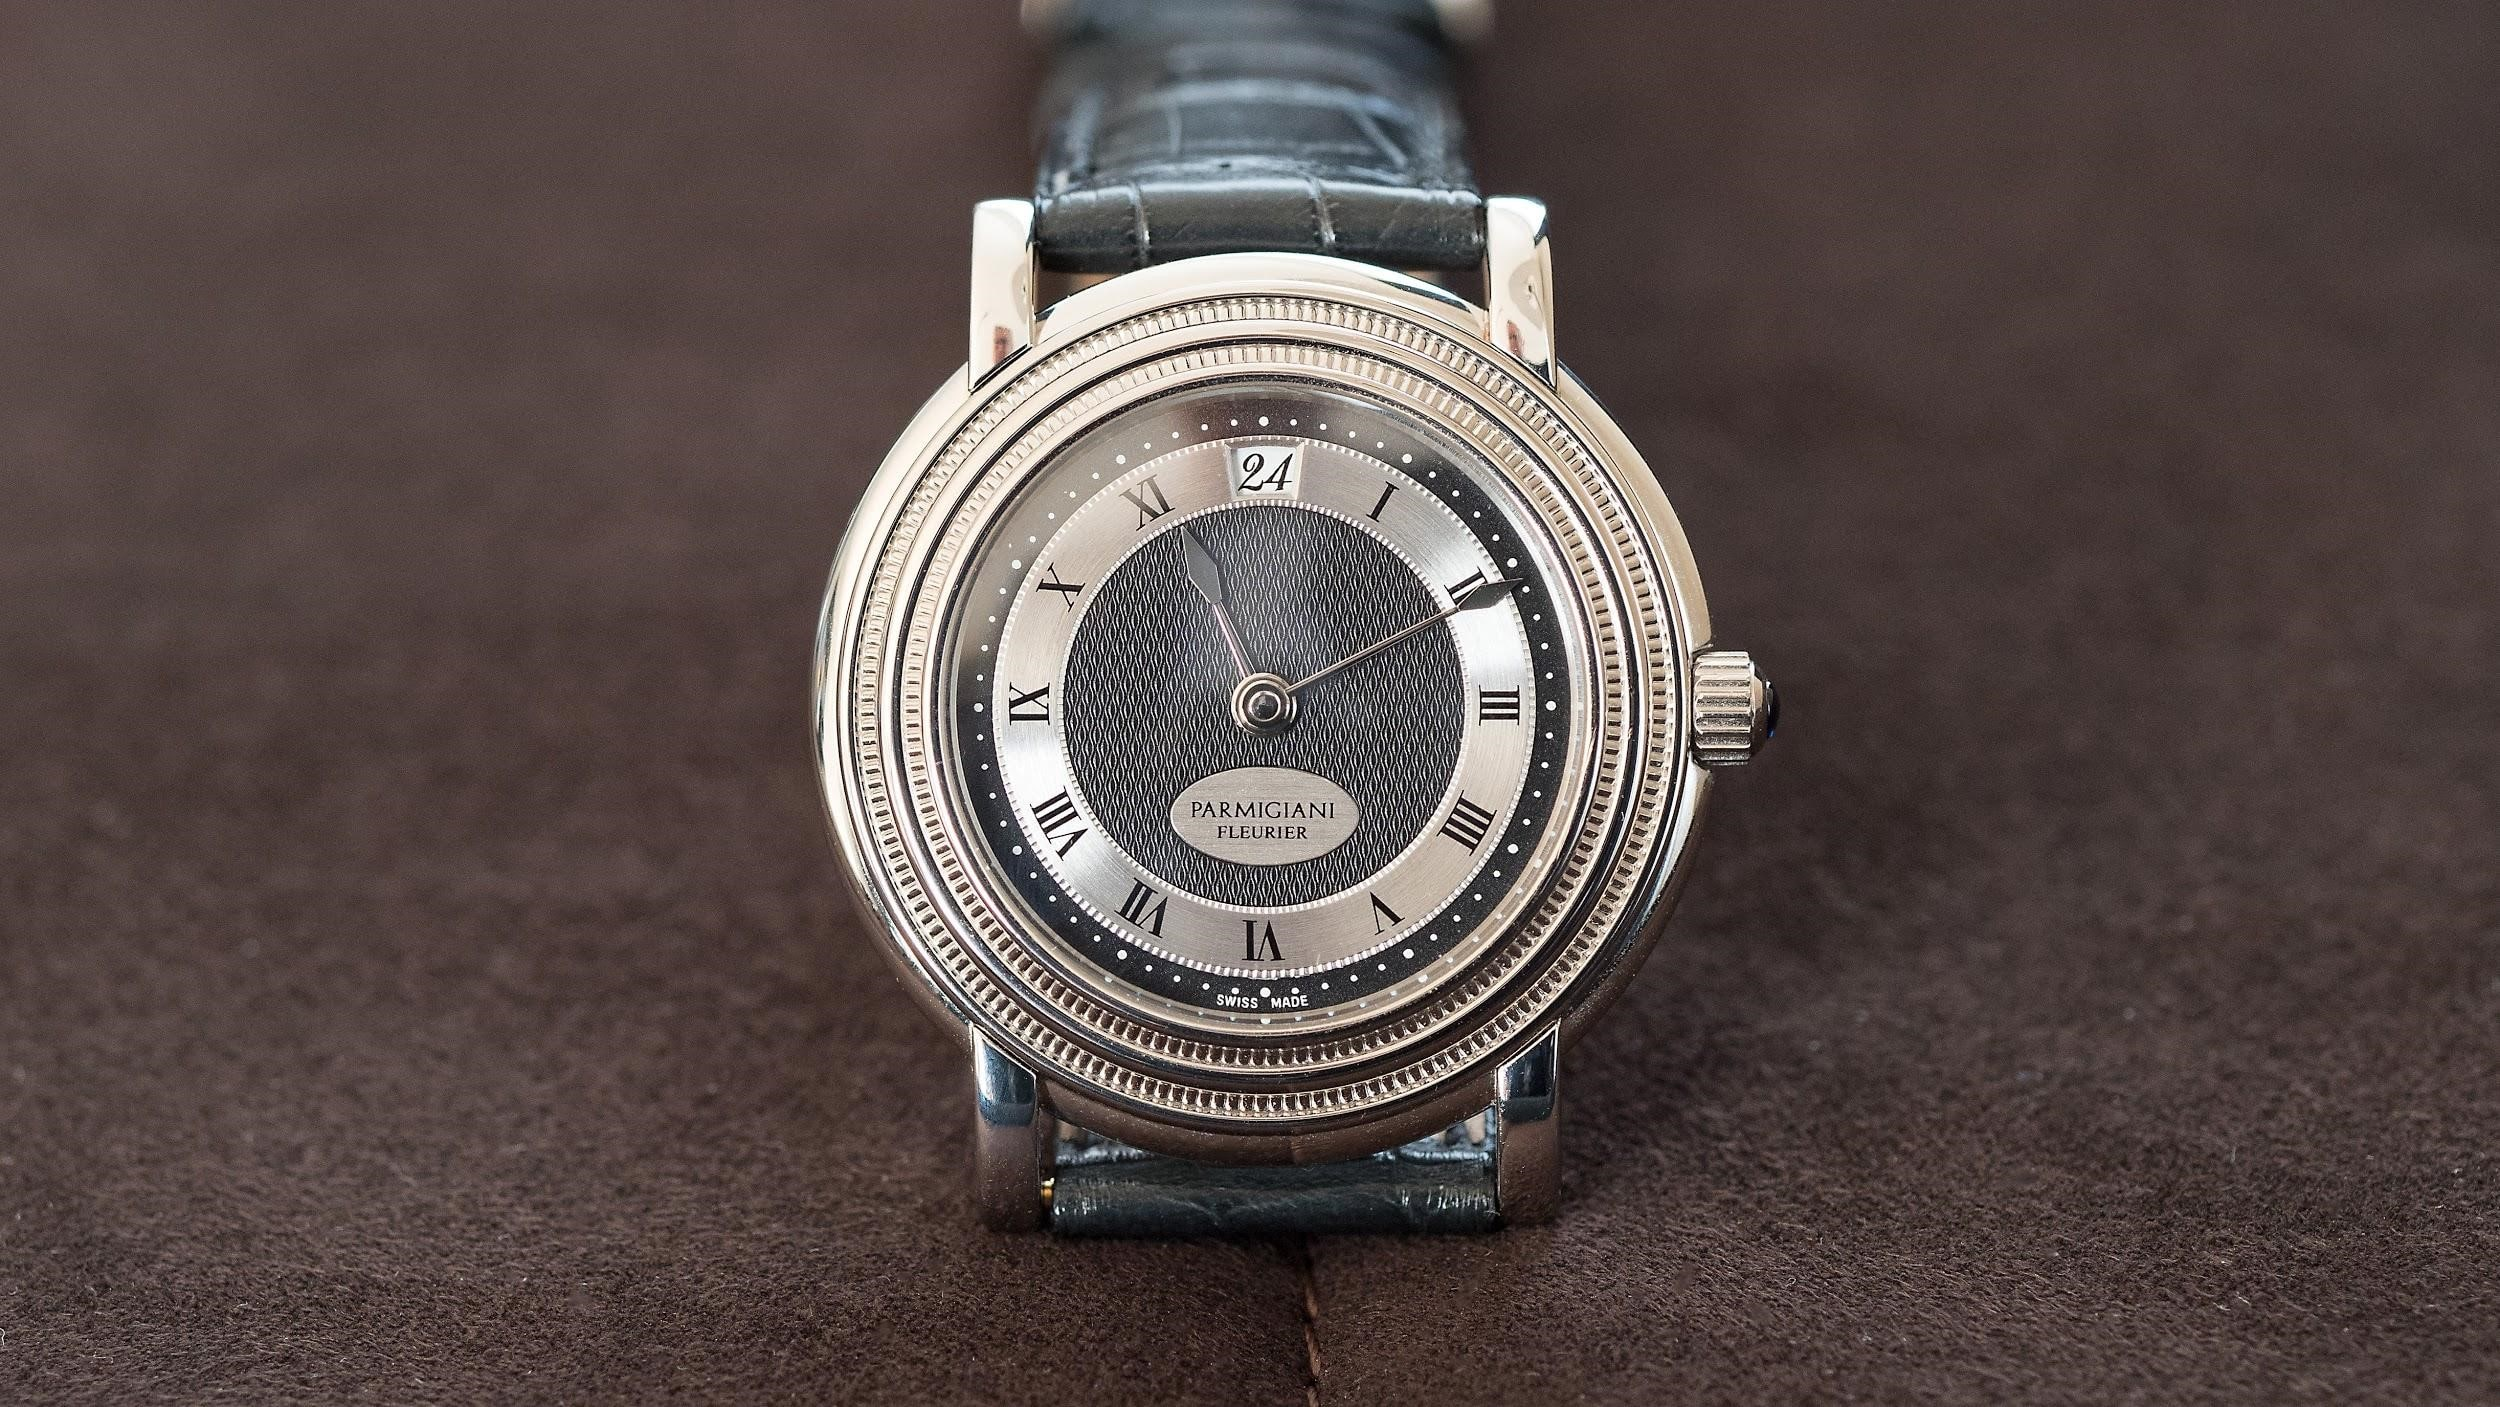 Parmigiani Fleurier Watches